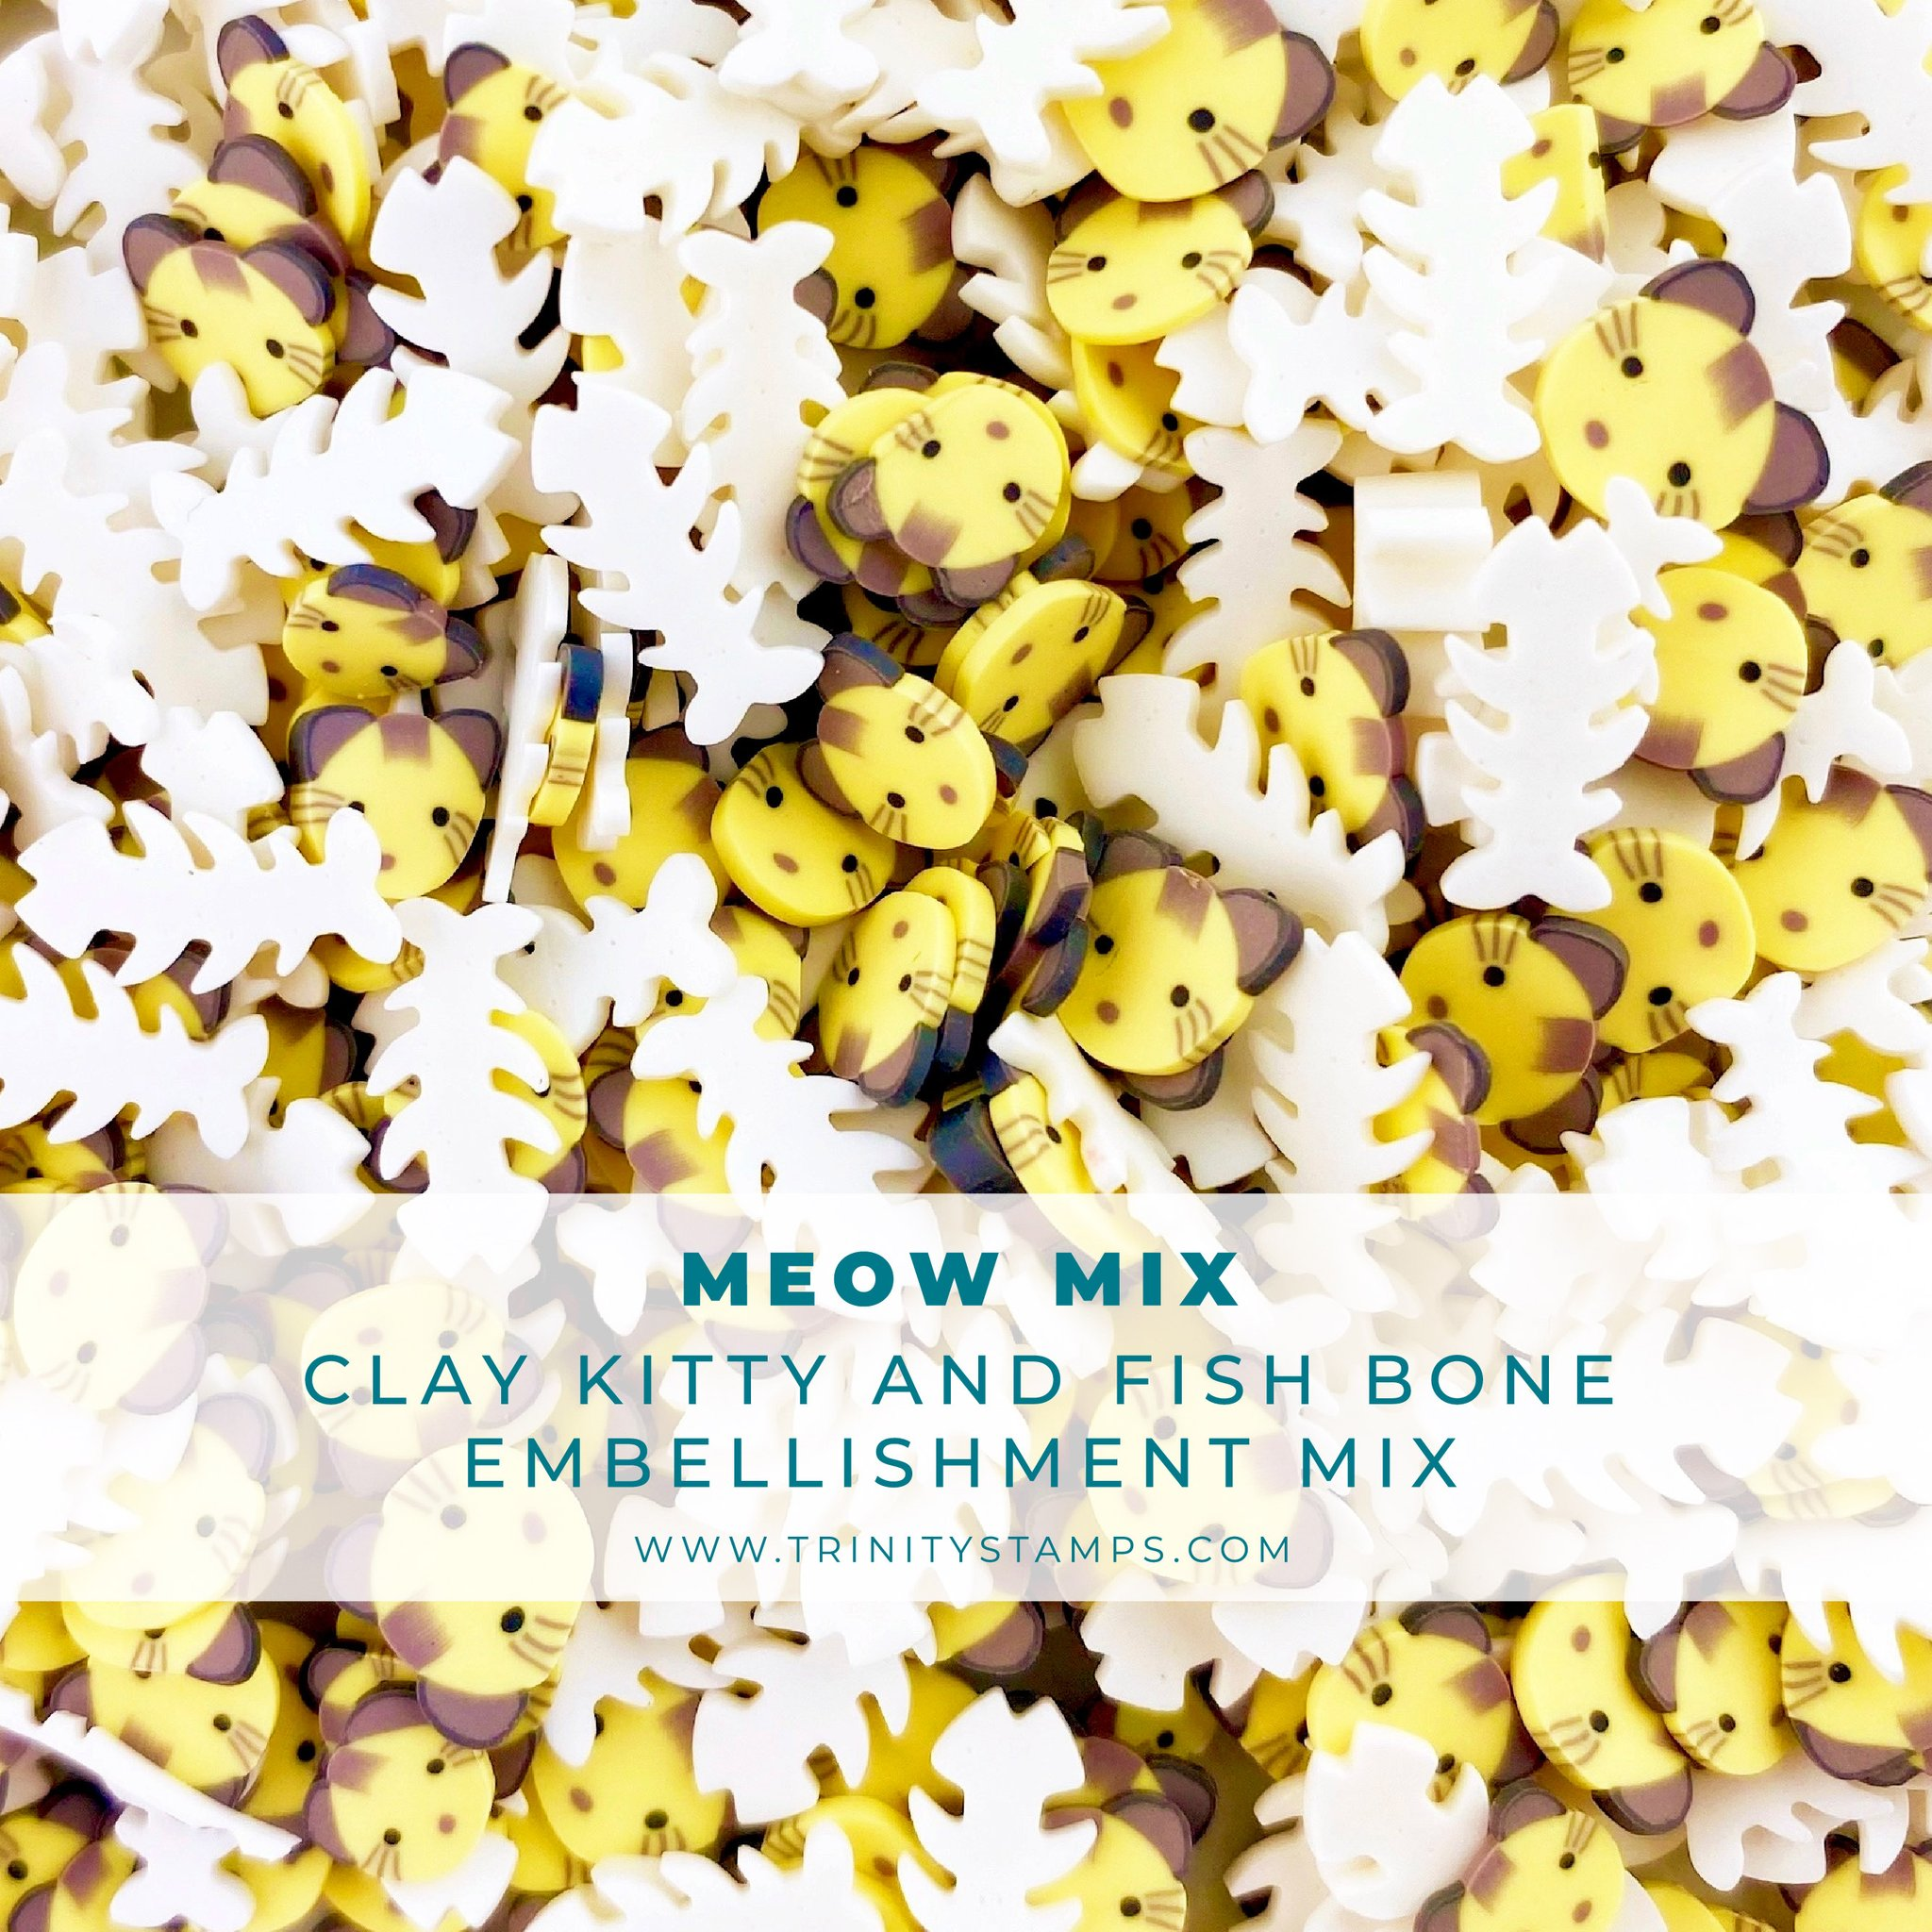 *NEW* - Trinity Stamps - Meow Mix Clay Embellishment Mix